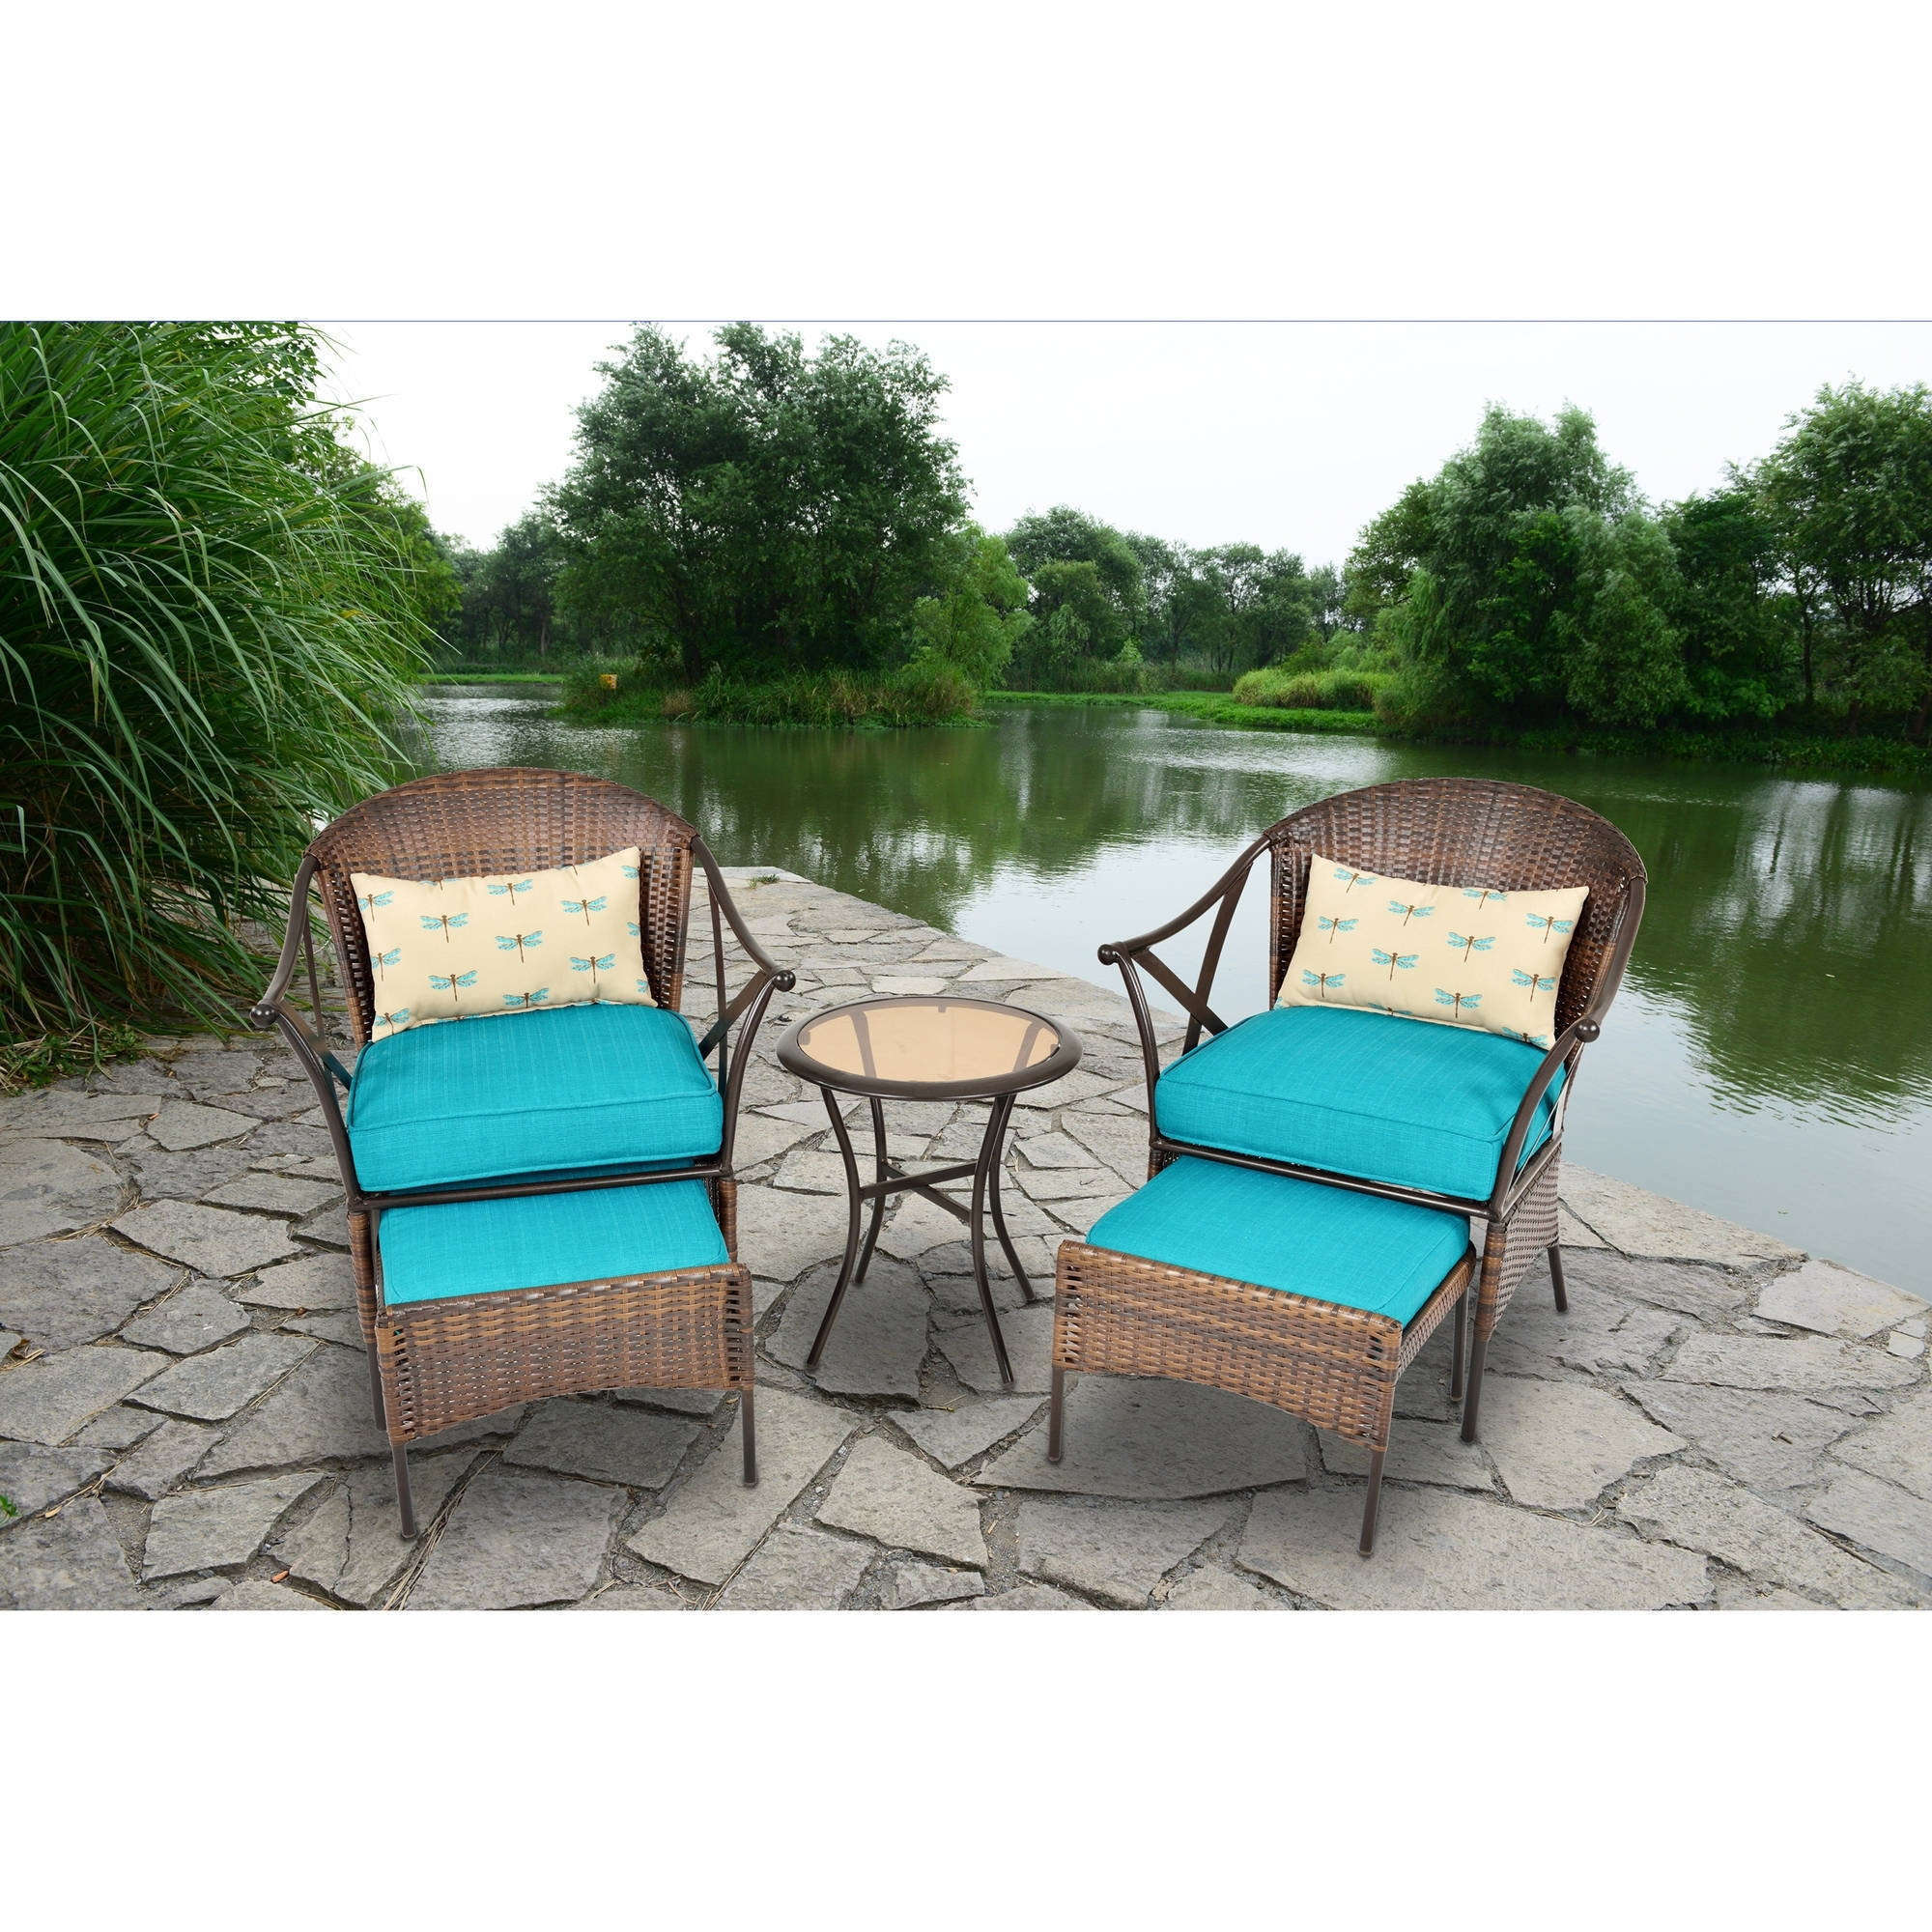 Most Recent Deal!!! 3 Ps Outdoor Rattan Patio Furniture Set Backyard Garden Pertaining To Patio Conversation Sets At Walmart (View 7 of 15)